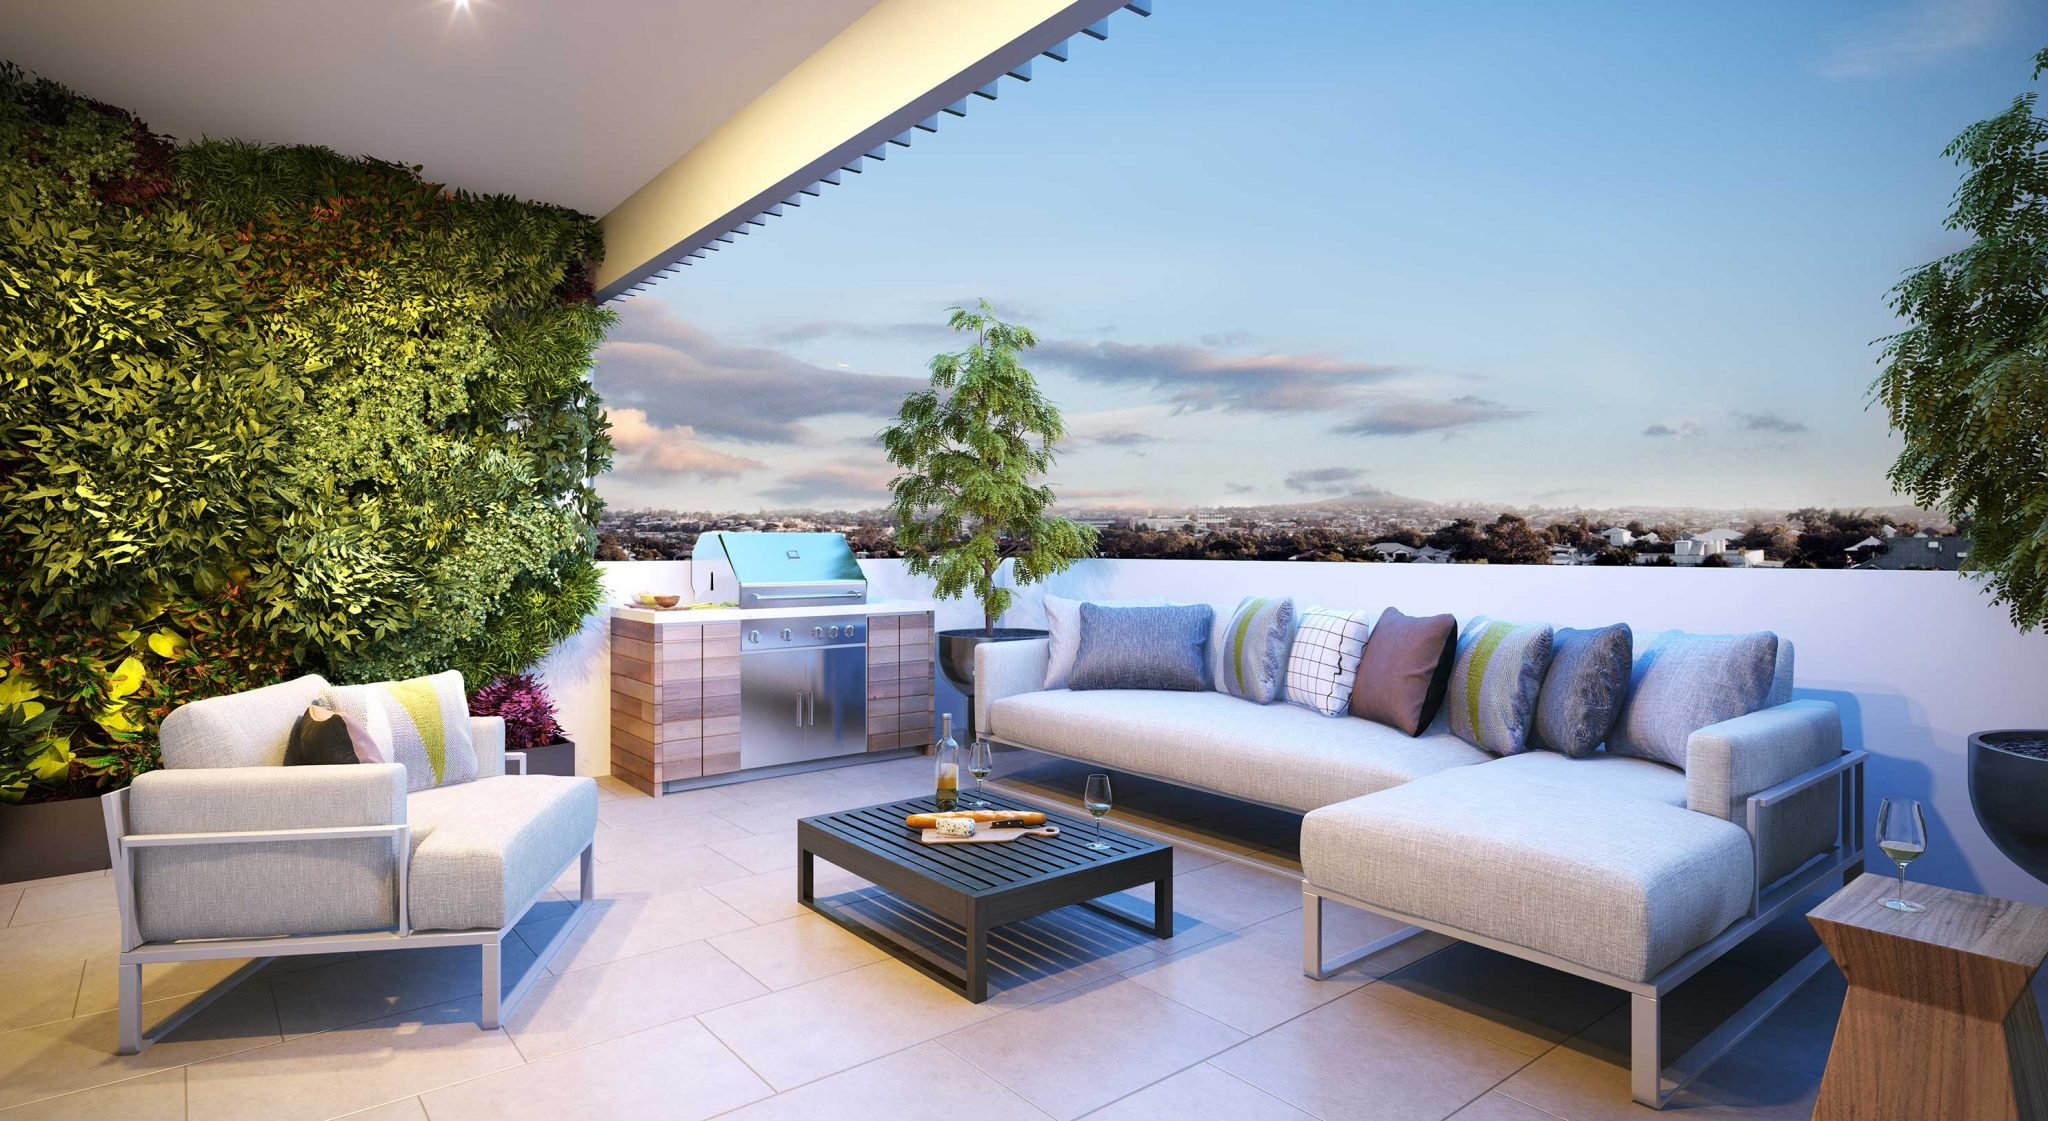 Crea tu terraza chill out por poco dinero hoy lowcost for Muebles chill out exterior